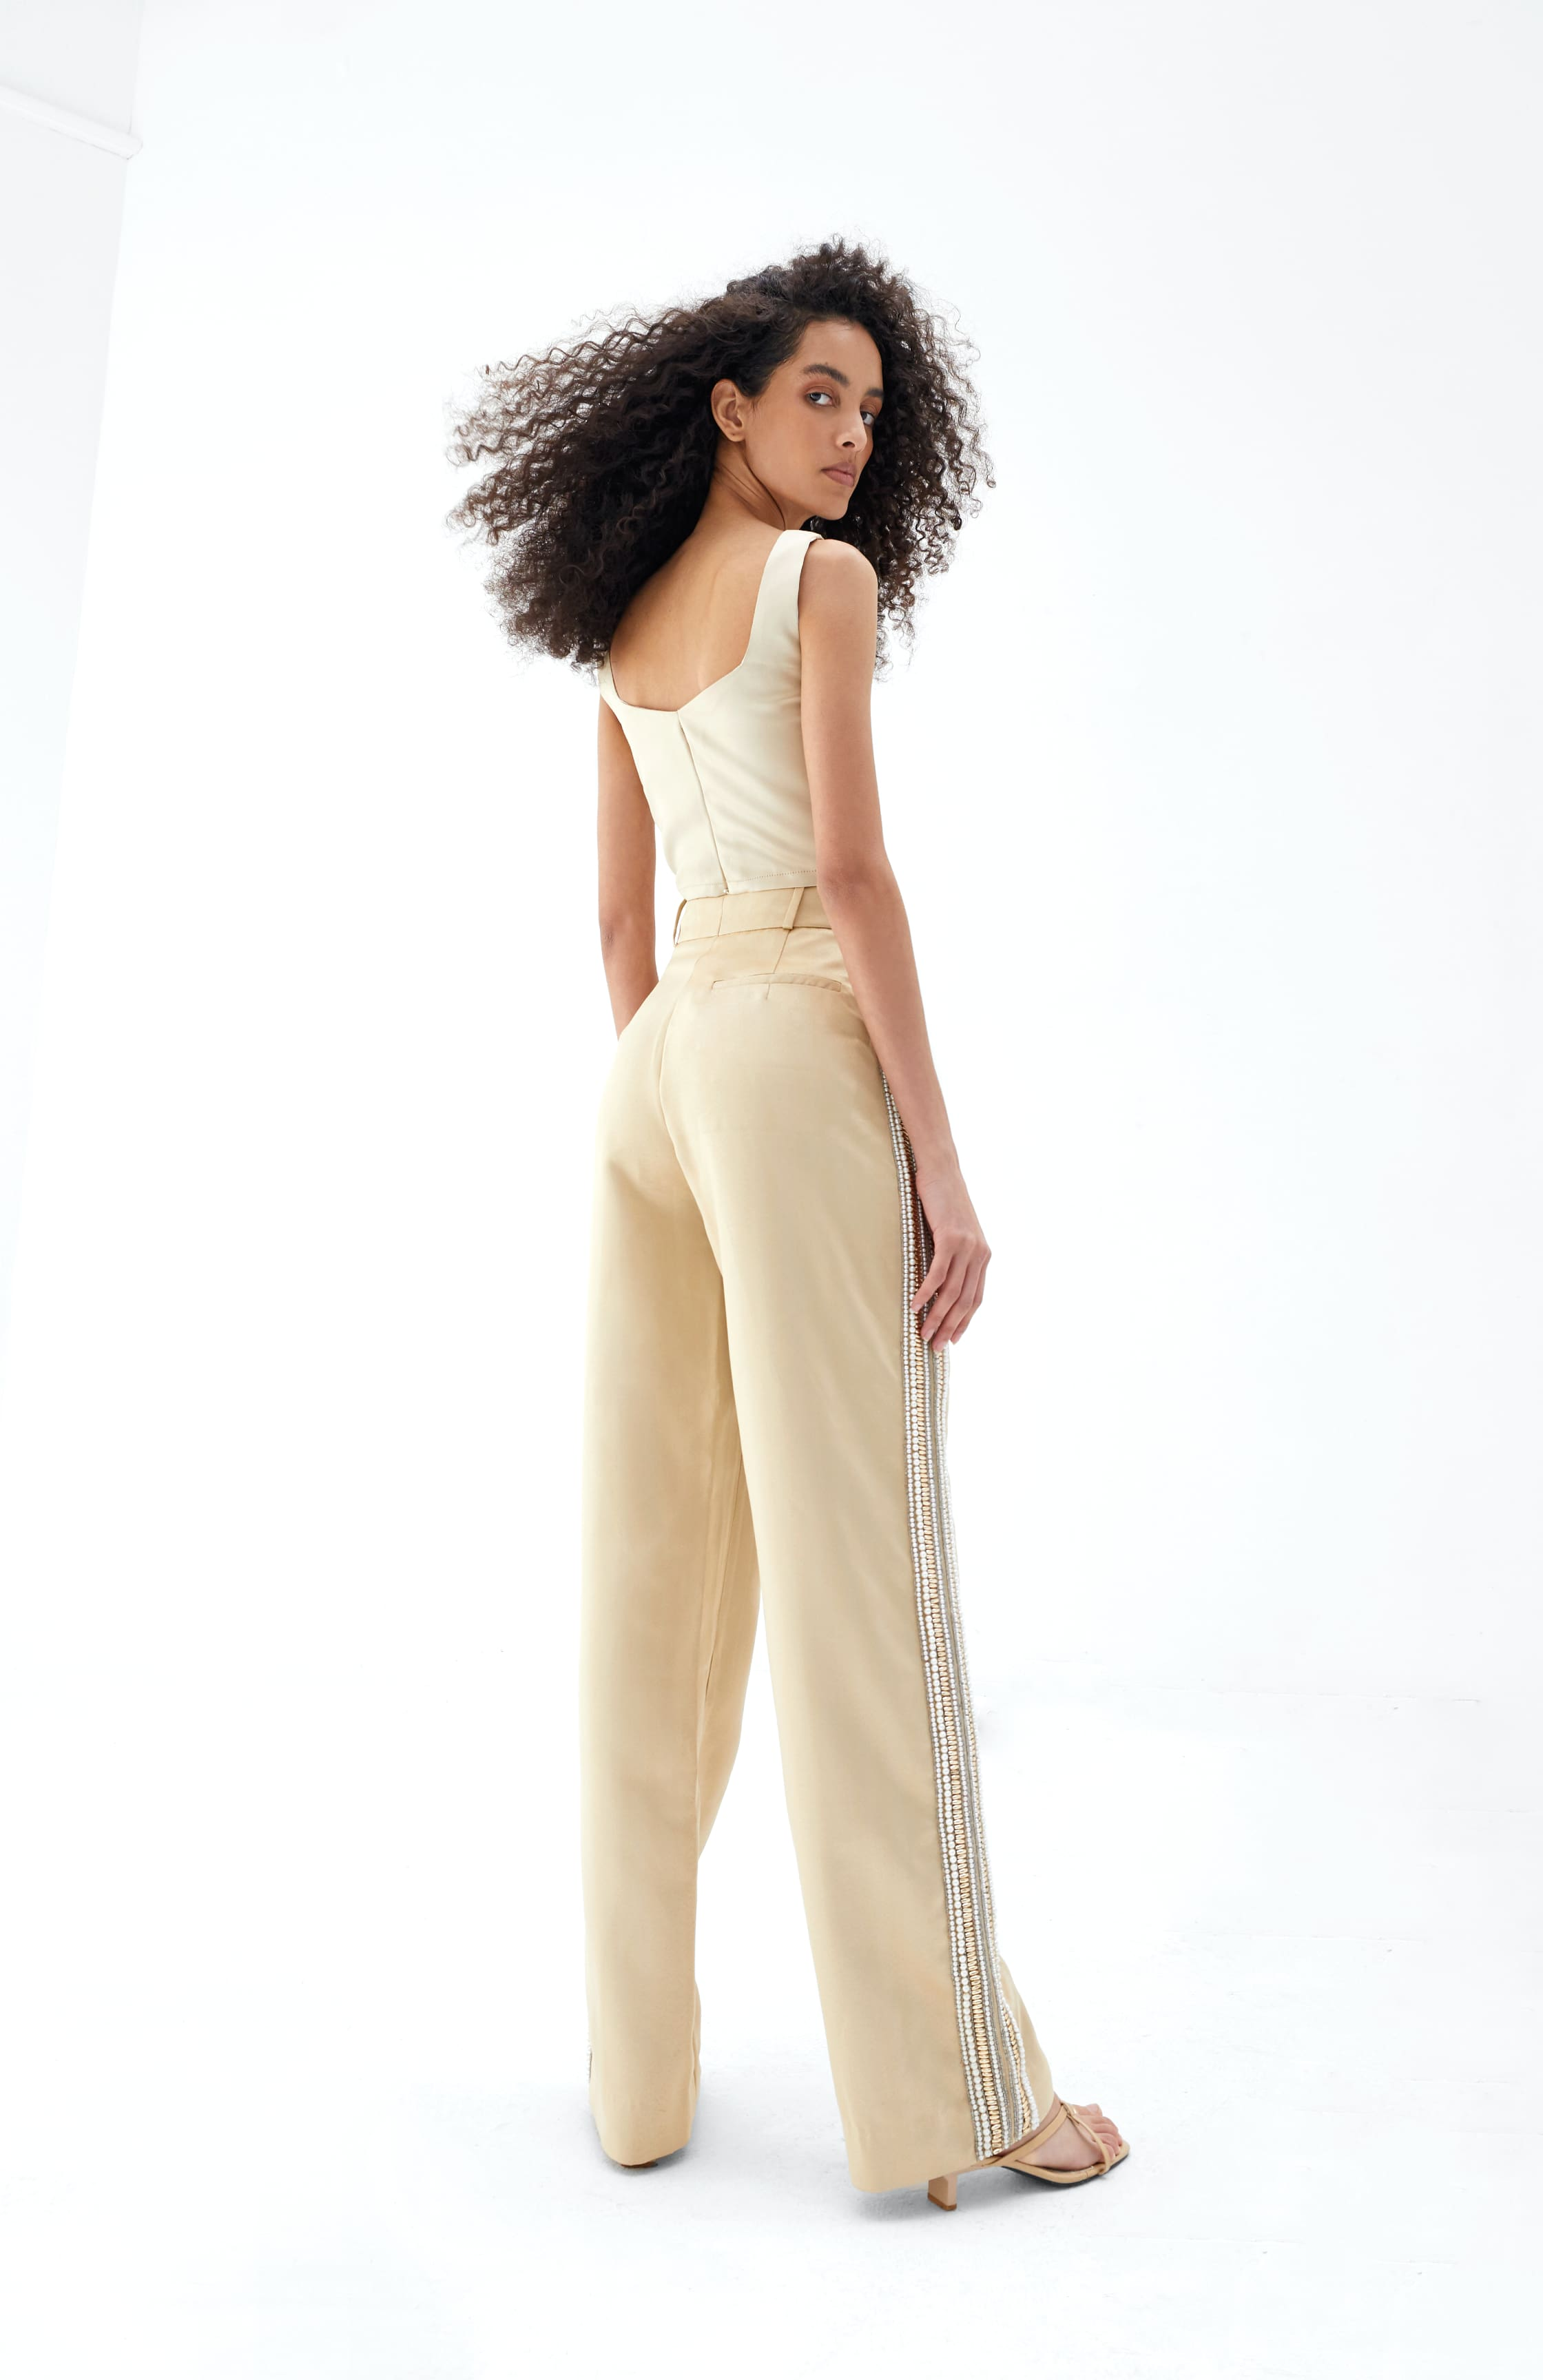 View 5 of model wearing Kismah Trousers in sand gold.